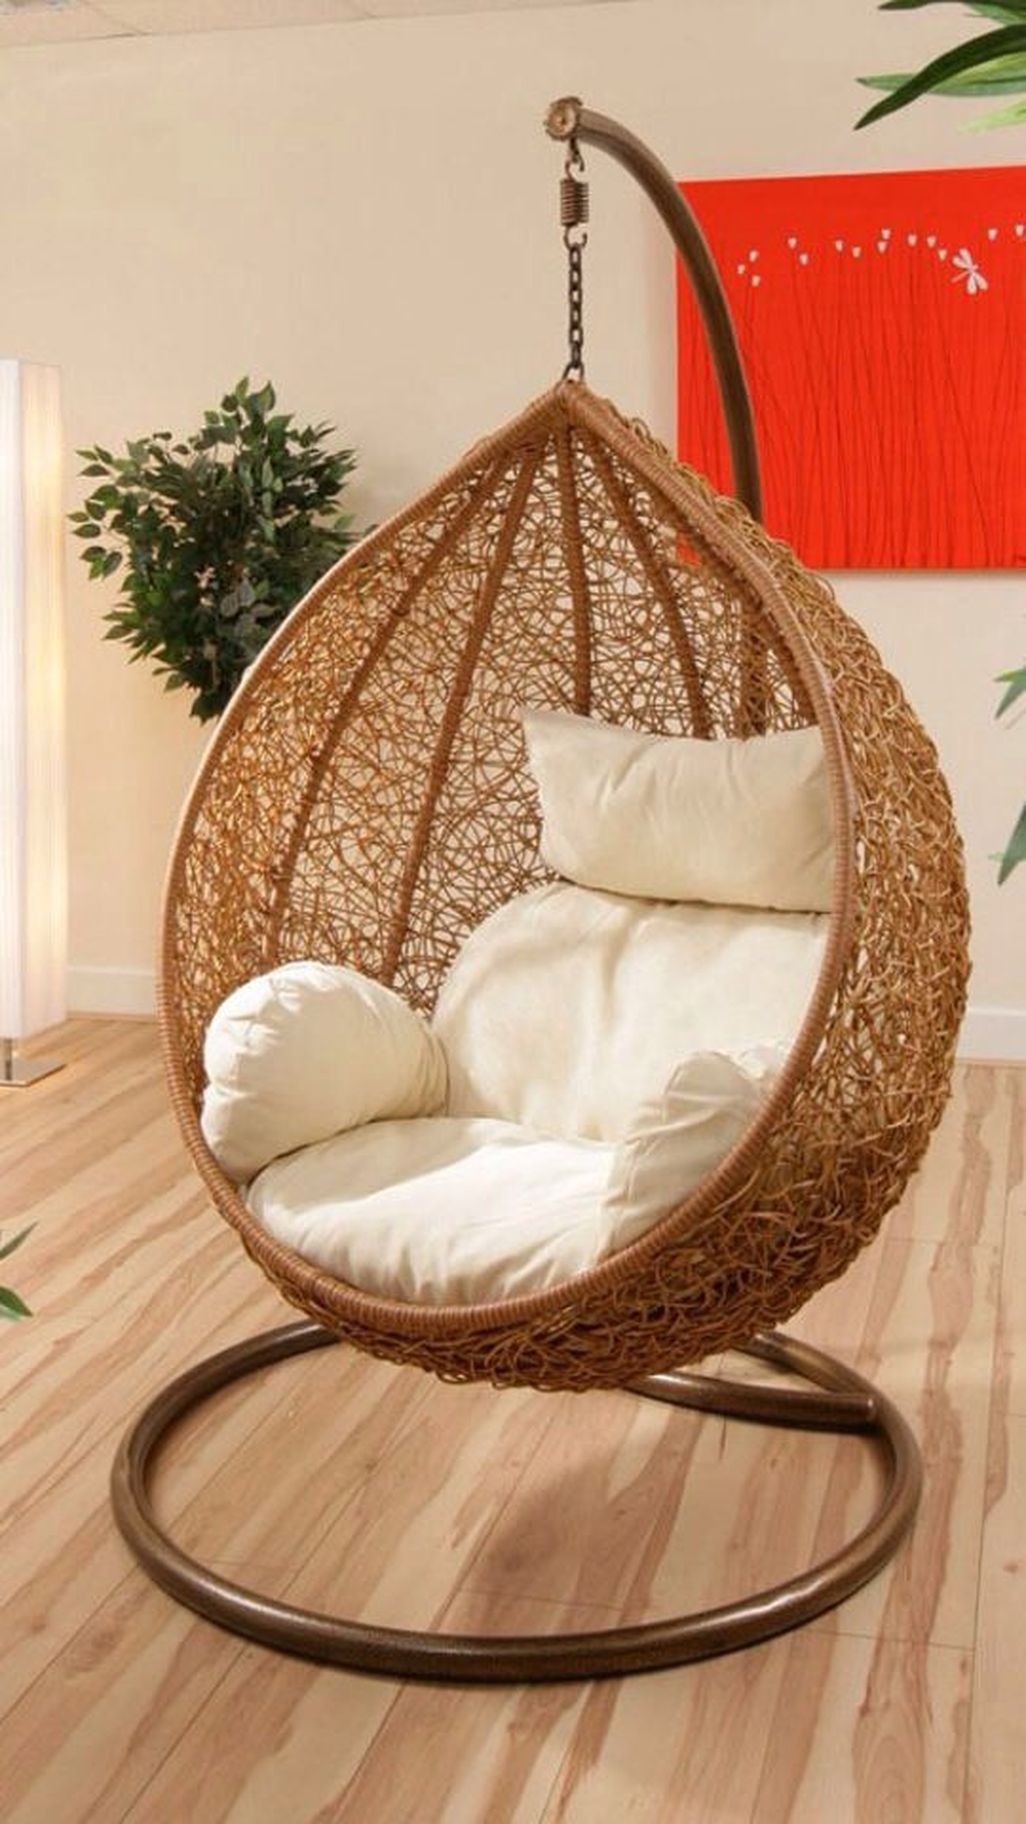 41 Modern Hanging Swing Chair Stand Indoor Decor Diy Hanging Chair Swing Chair Bedroom Hanging Lounge Chair